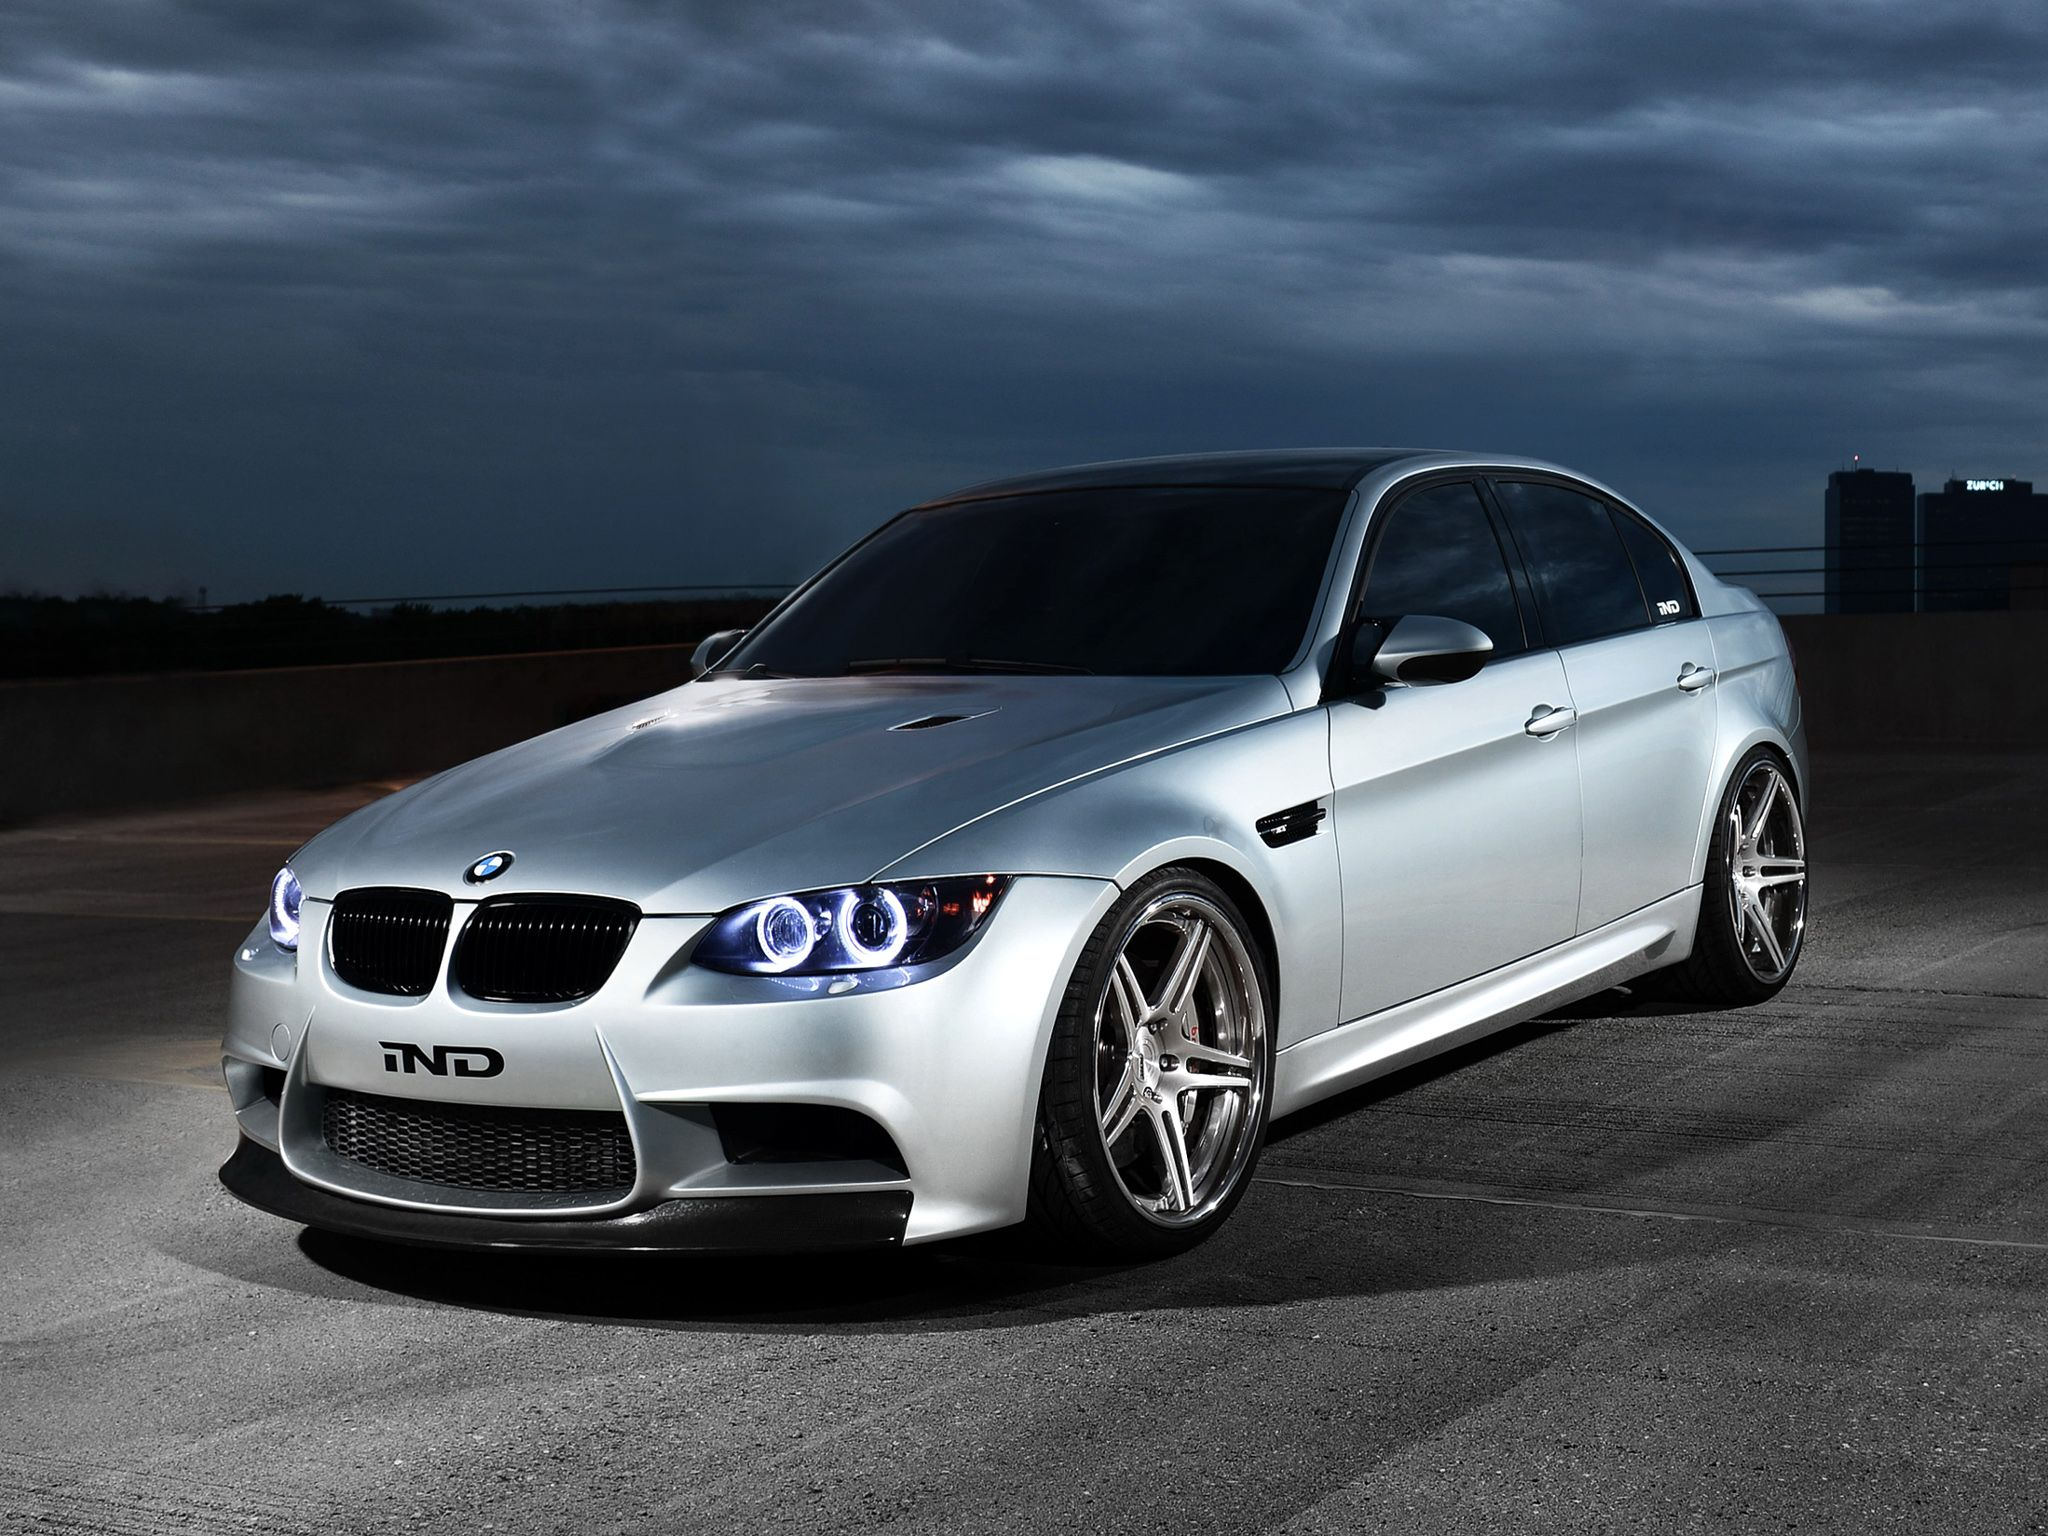 The 25 best bmw m3 price ideas on pinterest bmw m3 review bmw motorcycles prices and bmw m3 v8